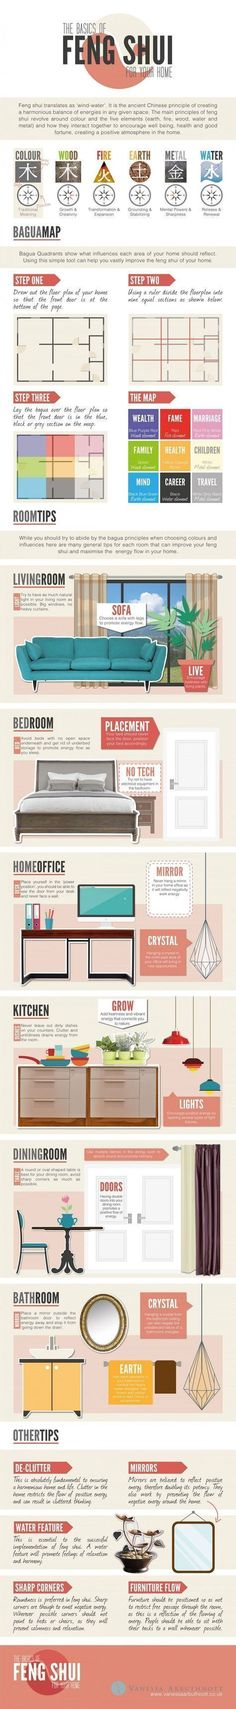 The Basics of Feng Shui For Your Home #Infographic #HomeImprovement #homeschoolinginfographic